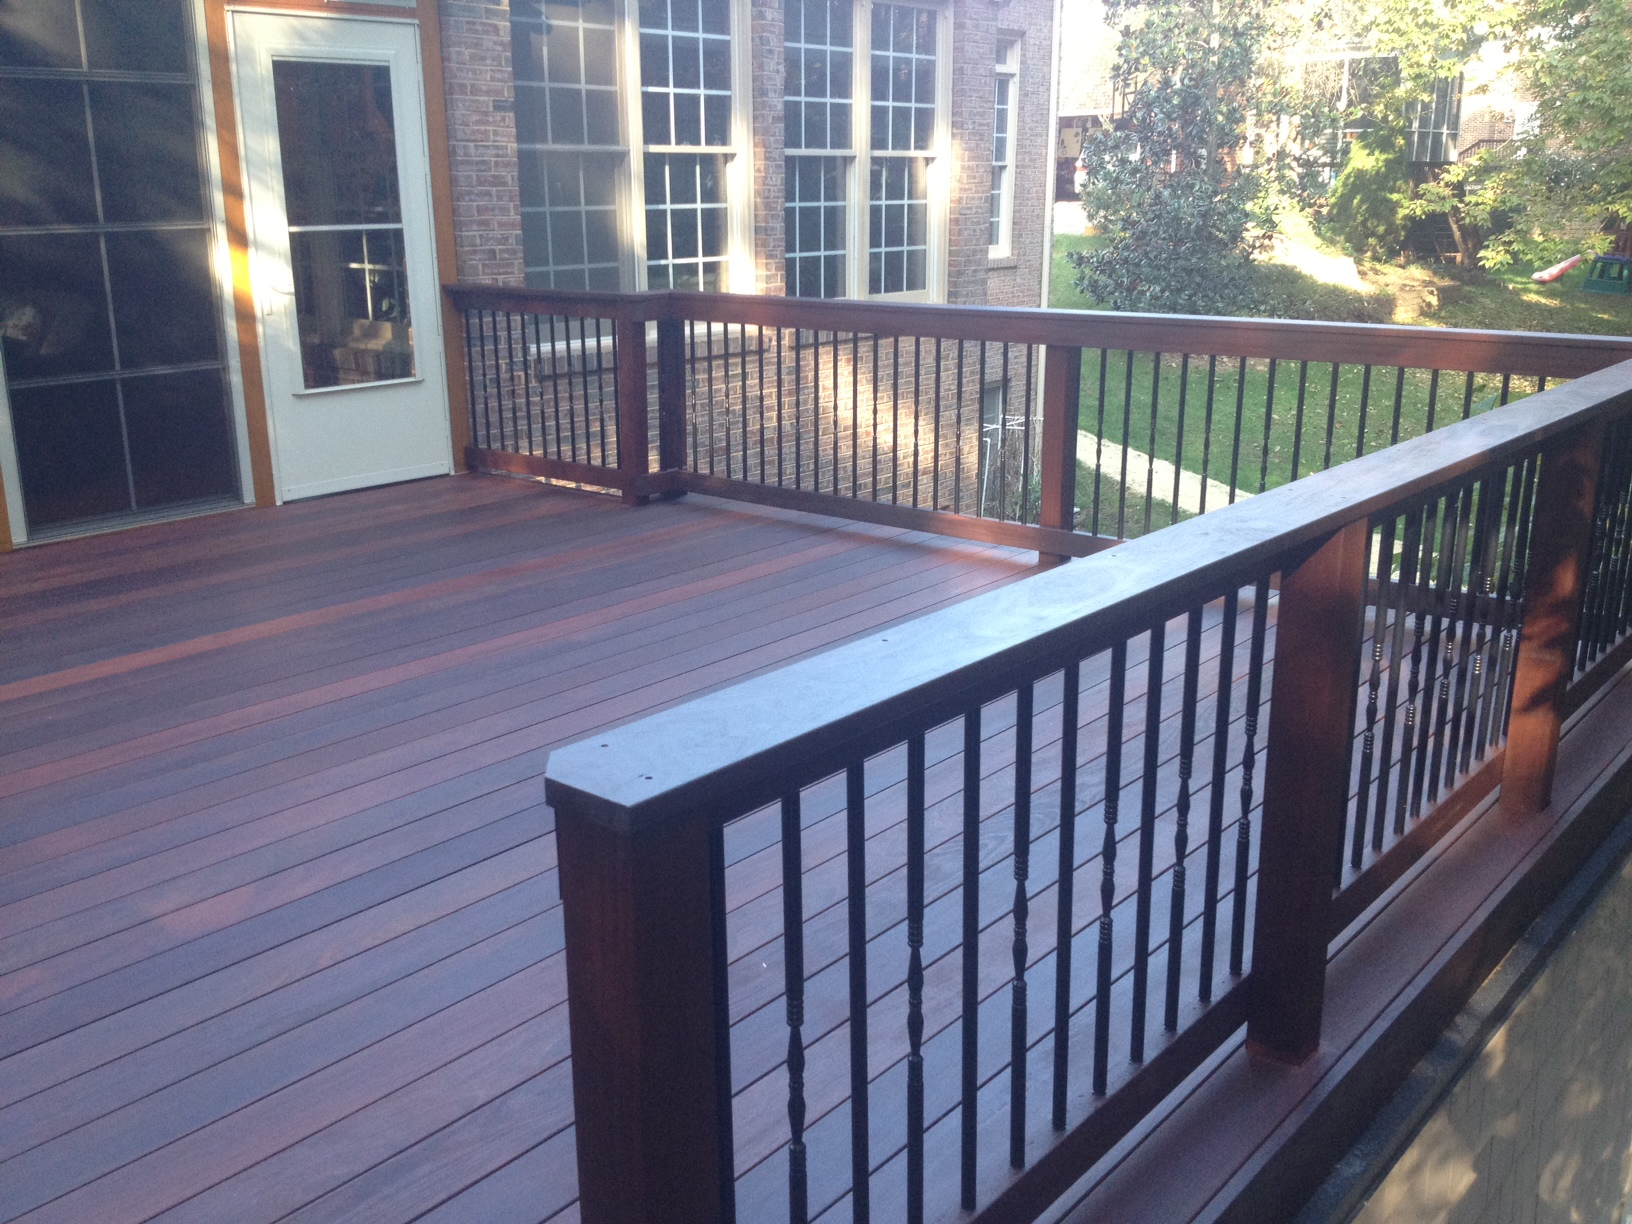 Ipe Brazilian Hardwood Decking Is Becoming Popular For Lake Wylie intended for sizing 1632 X 1224